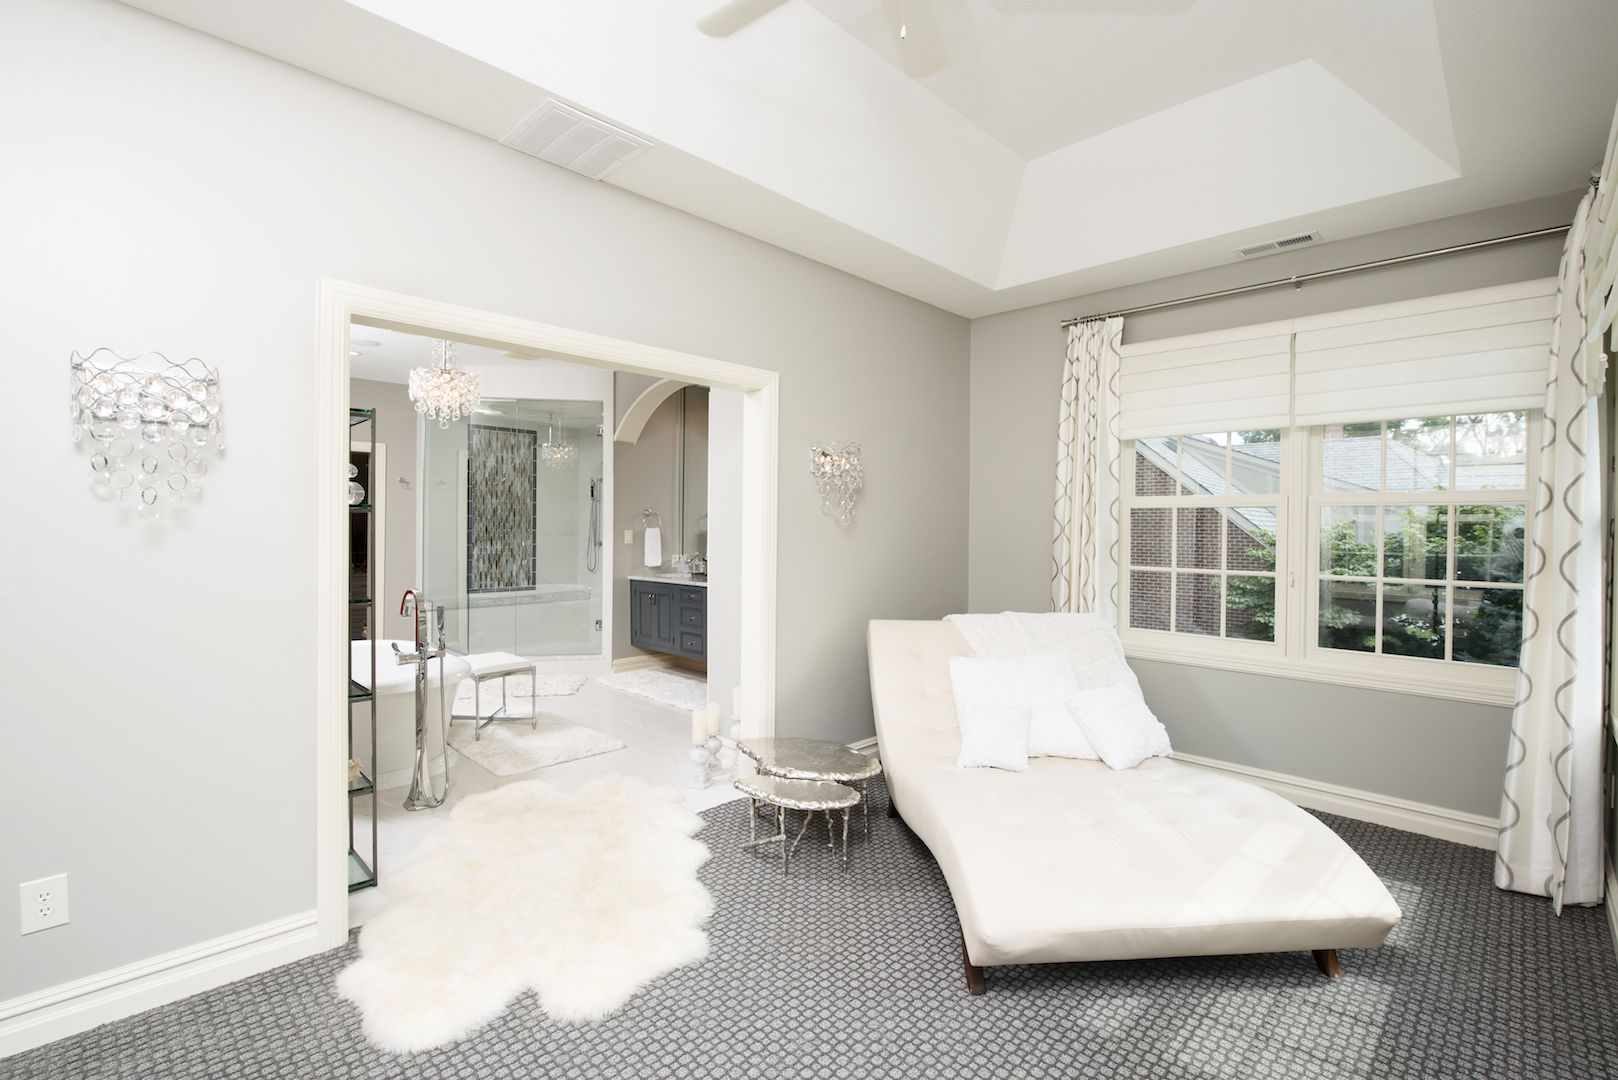 Leisure space built off of master bath Photo Credit: @WhonPhoto